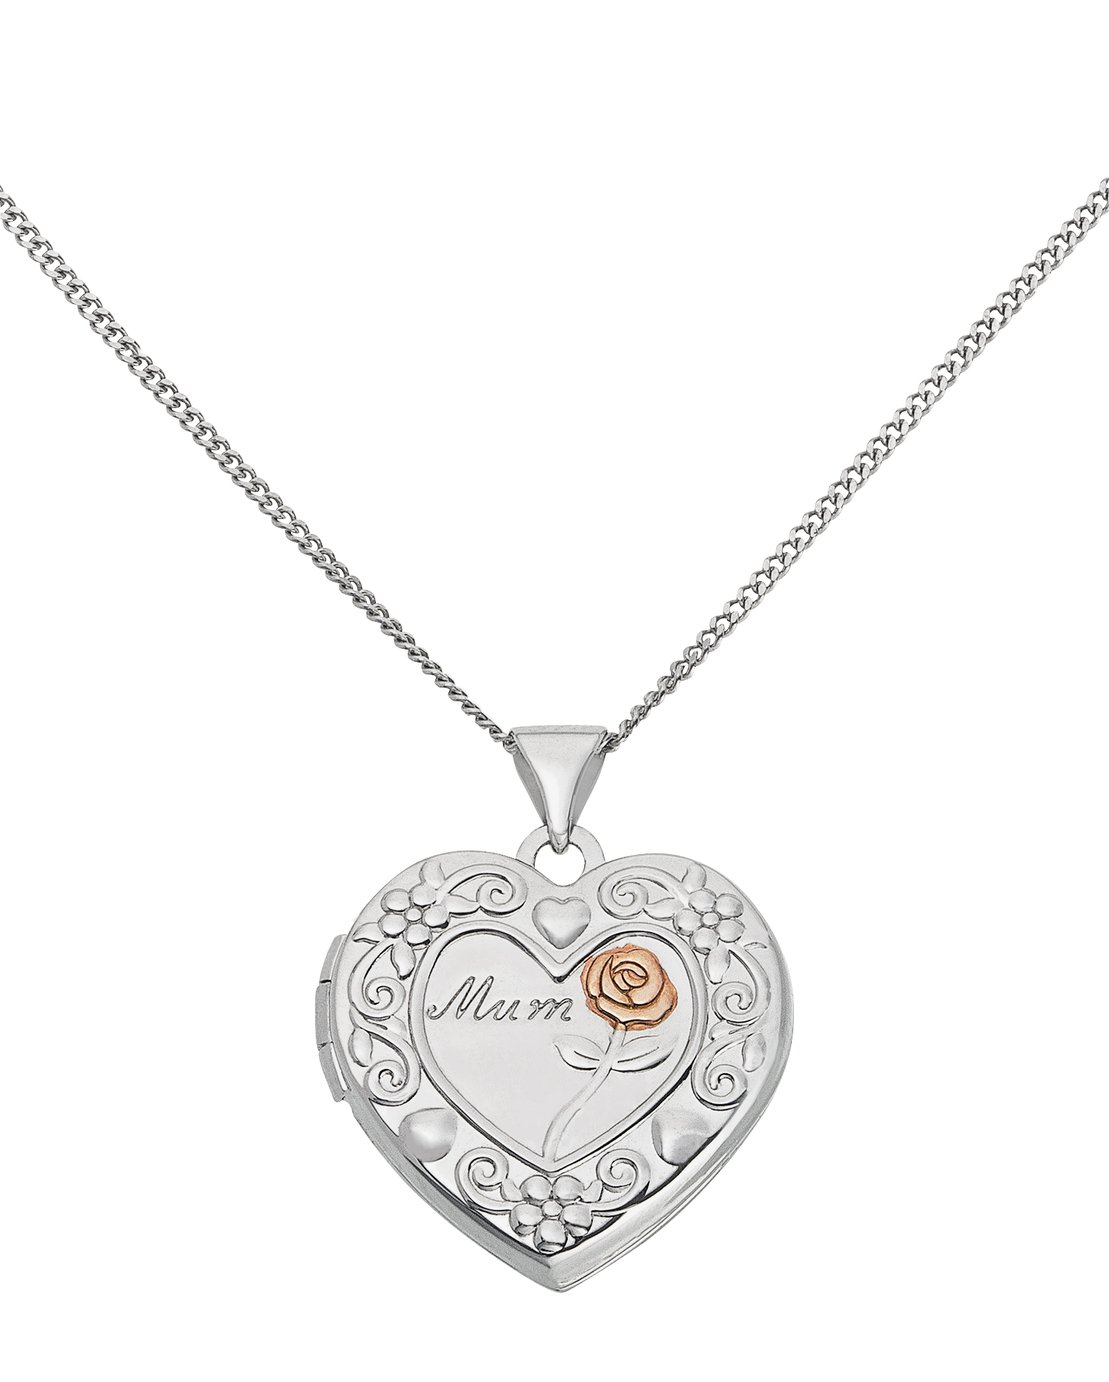 Image of Sterling Silver - Mum Heart Locket Pendant.